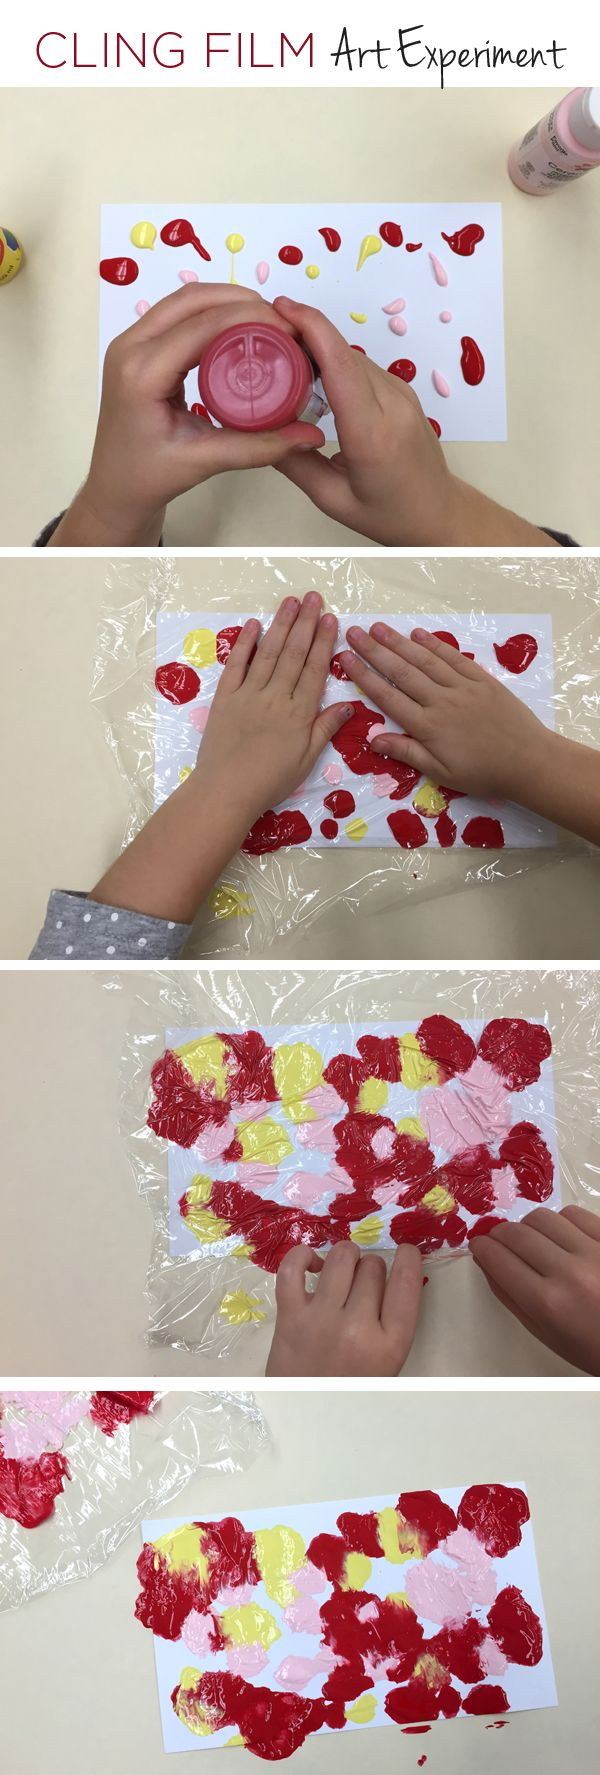 Cling Film Art | will do this with the kids in Chinese colors (gold and red), and then fold into small fans after they dry. Happy Chinese New Year!